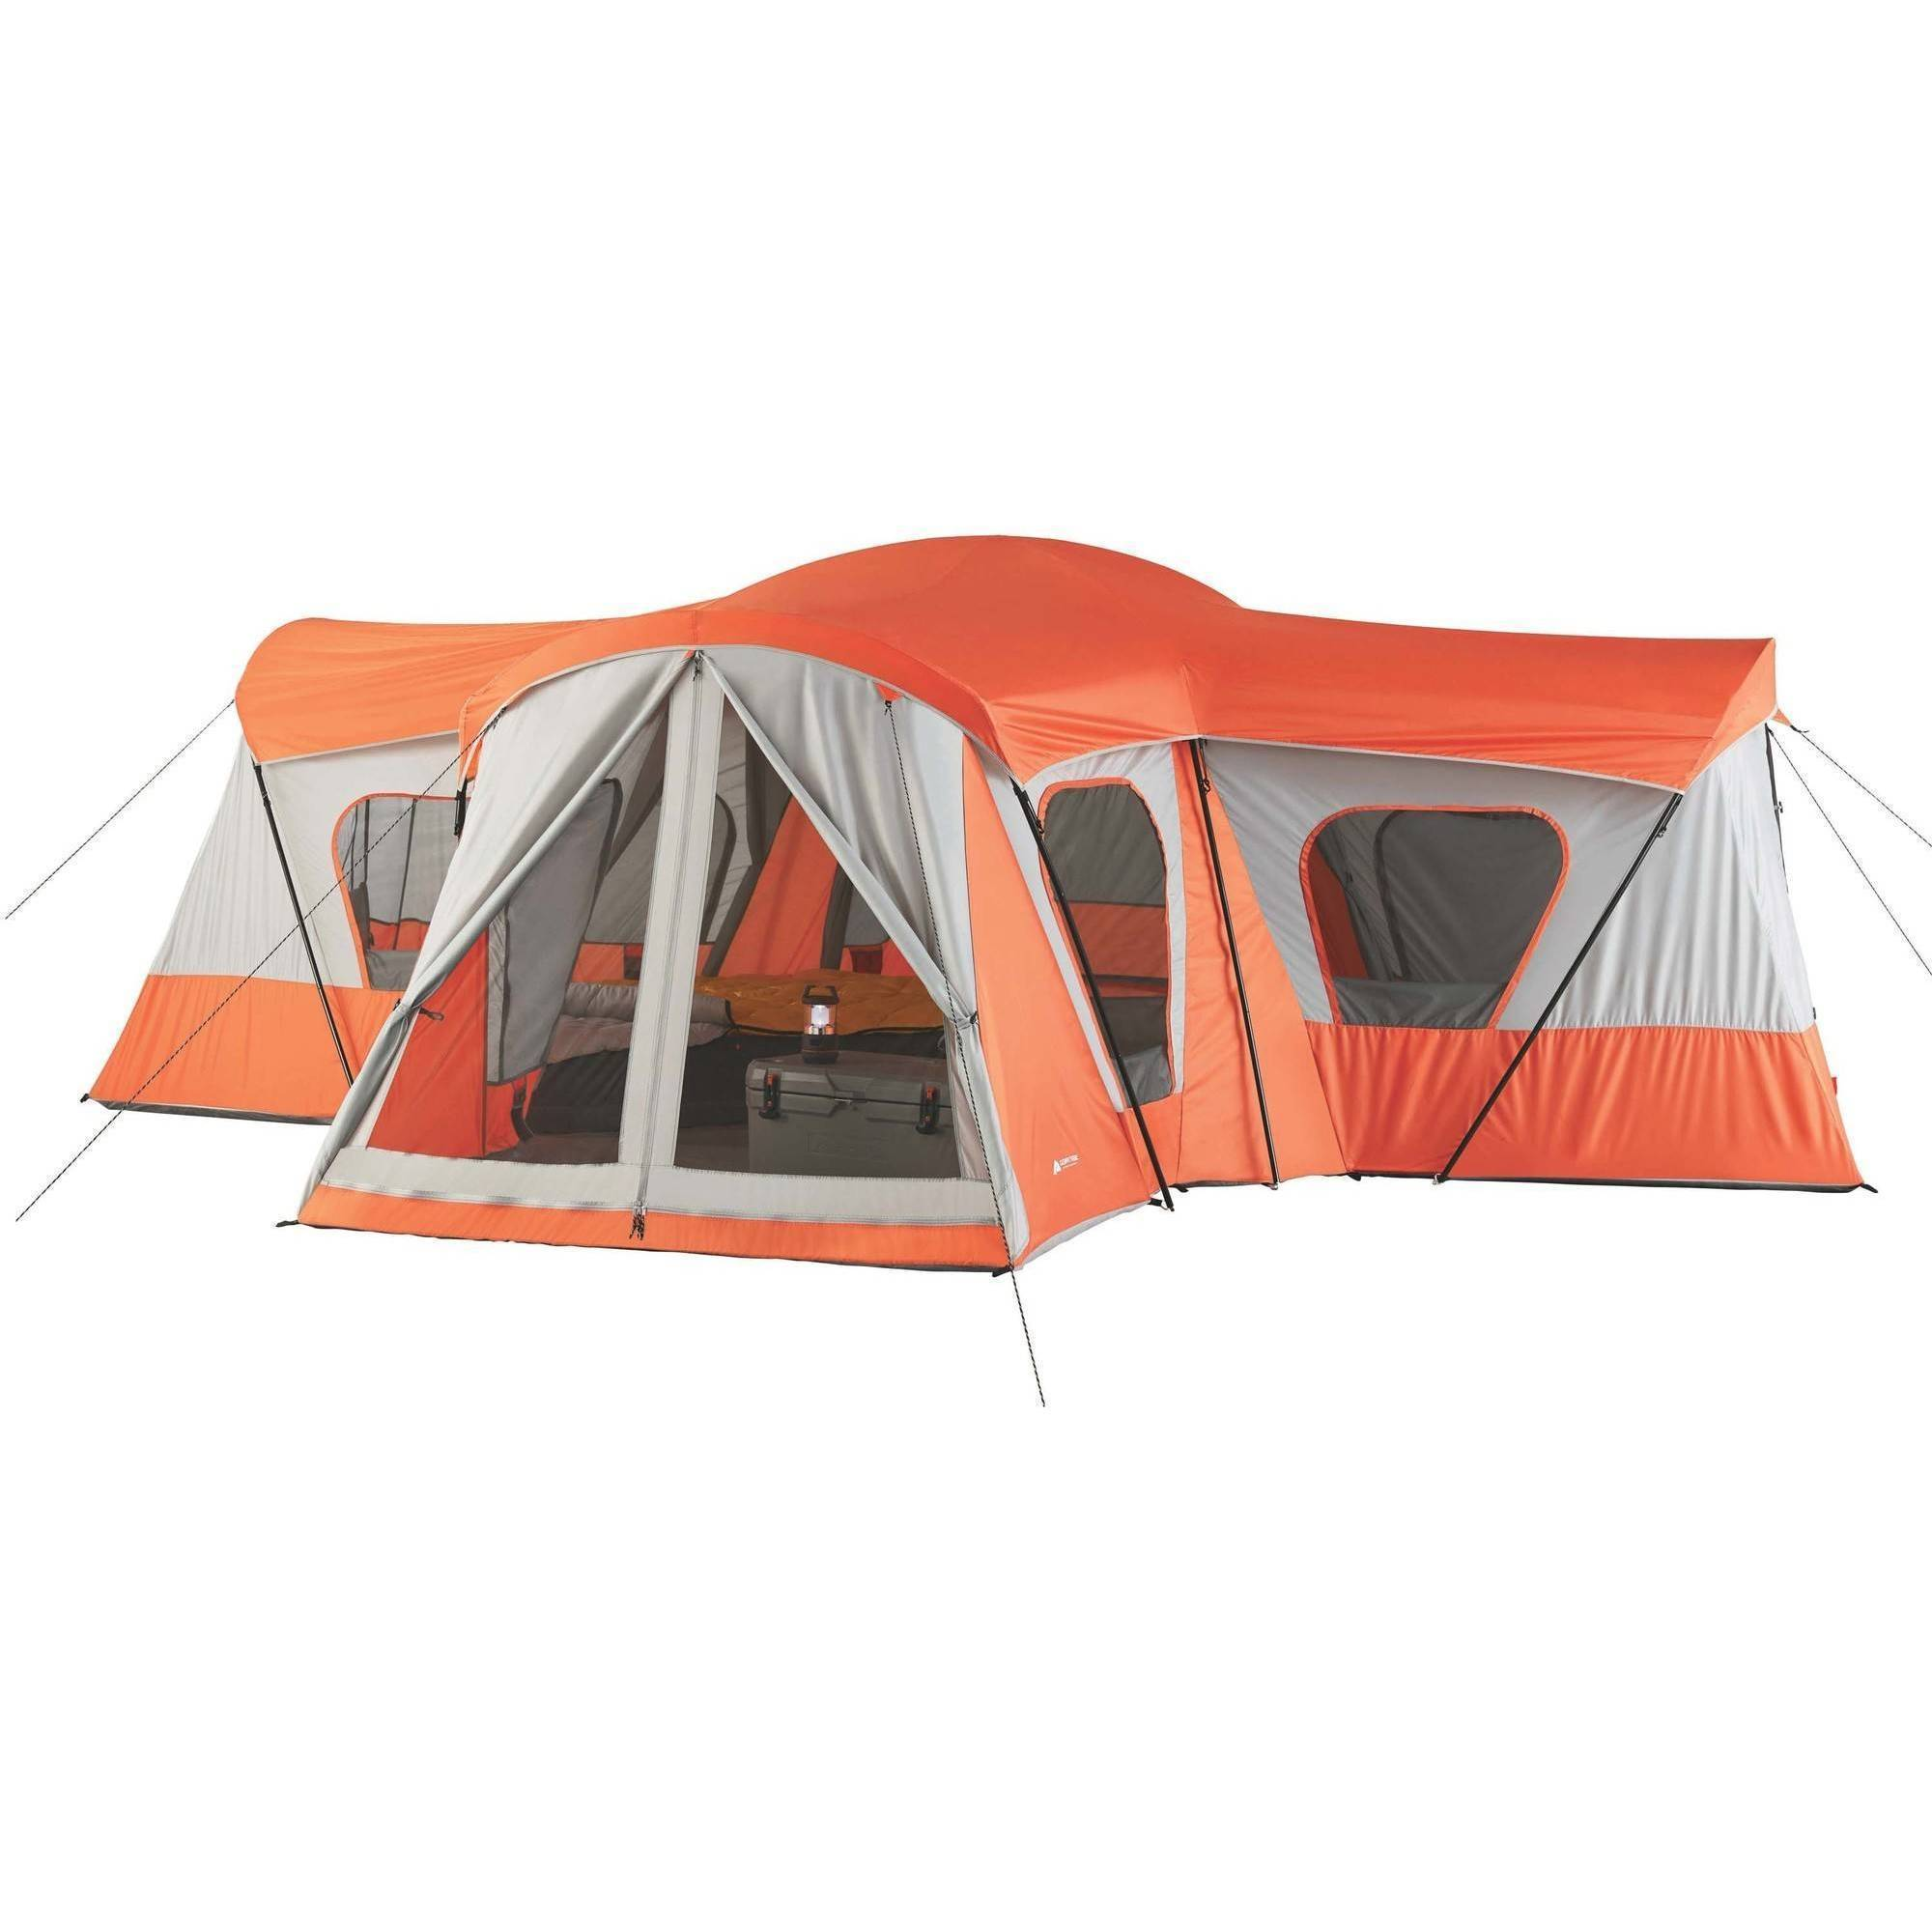 Ozark Trail 14-Person 4-Room Base C& Tent  sc 1 st  Walmart & Ozark Trail 14-Person 4-Room Base Camp Tent - Walmart.com